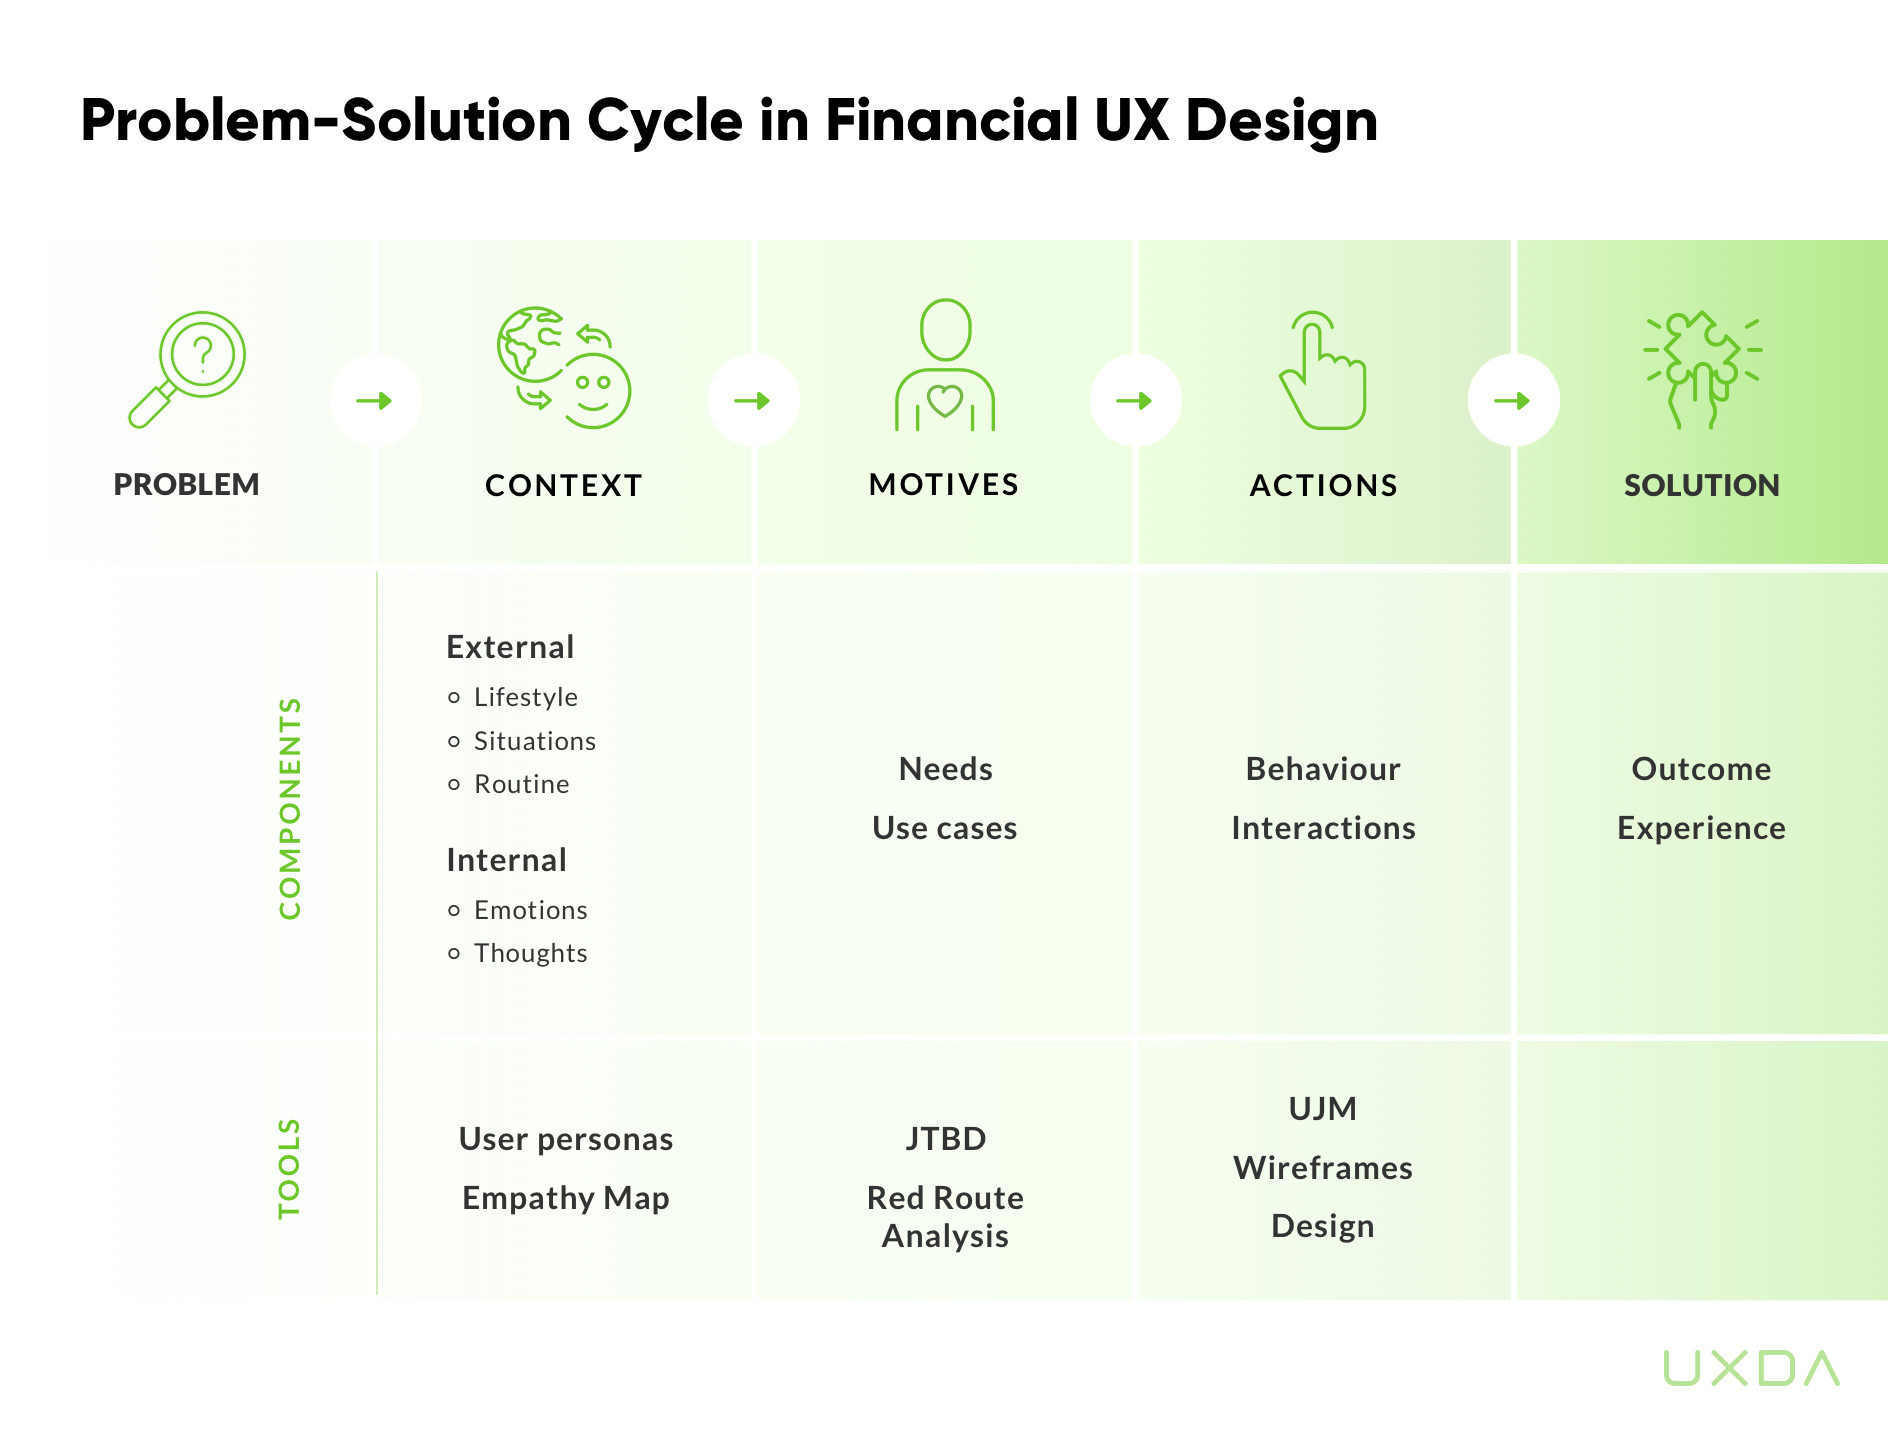 digital-financial-services-ux-problem-solution-cycle__3.jpg